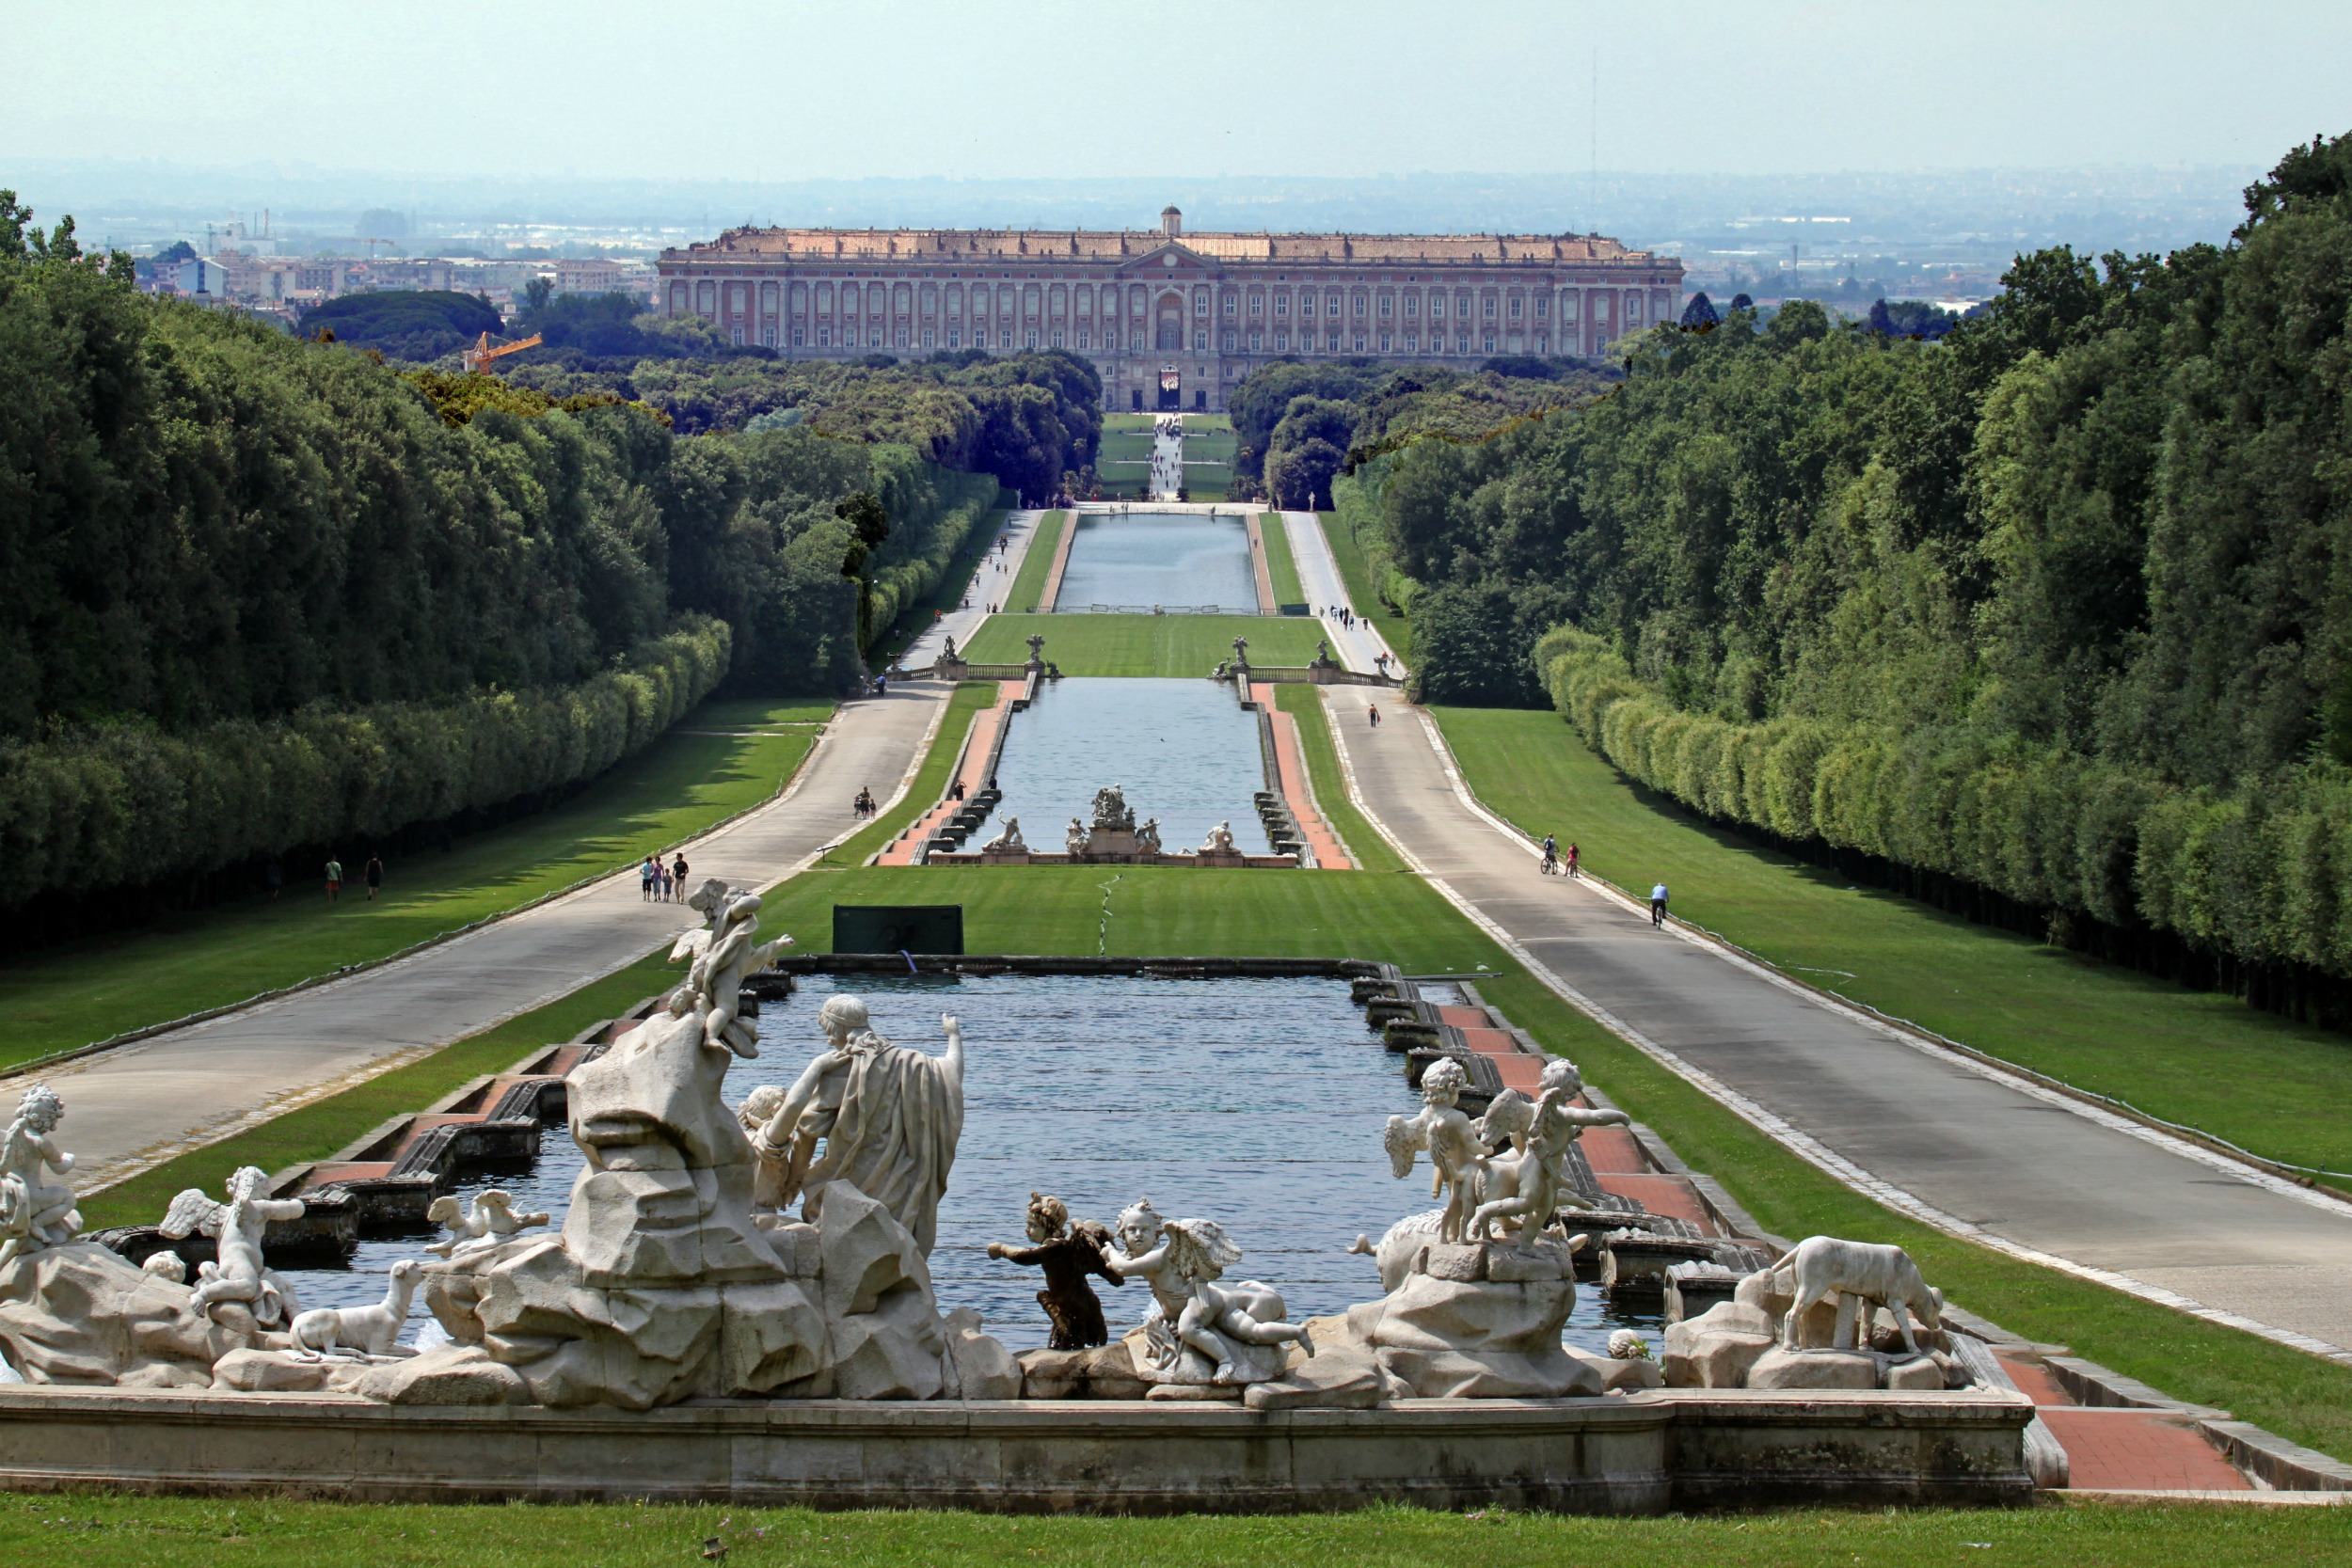 Caserta's Royal Palace